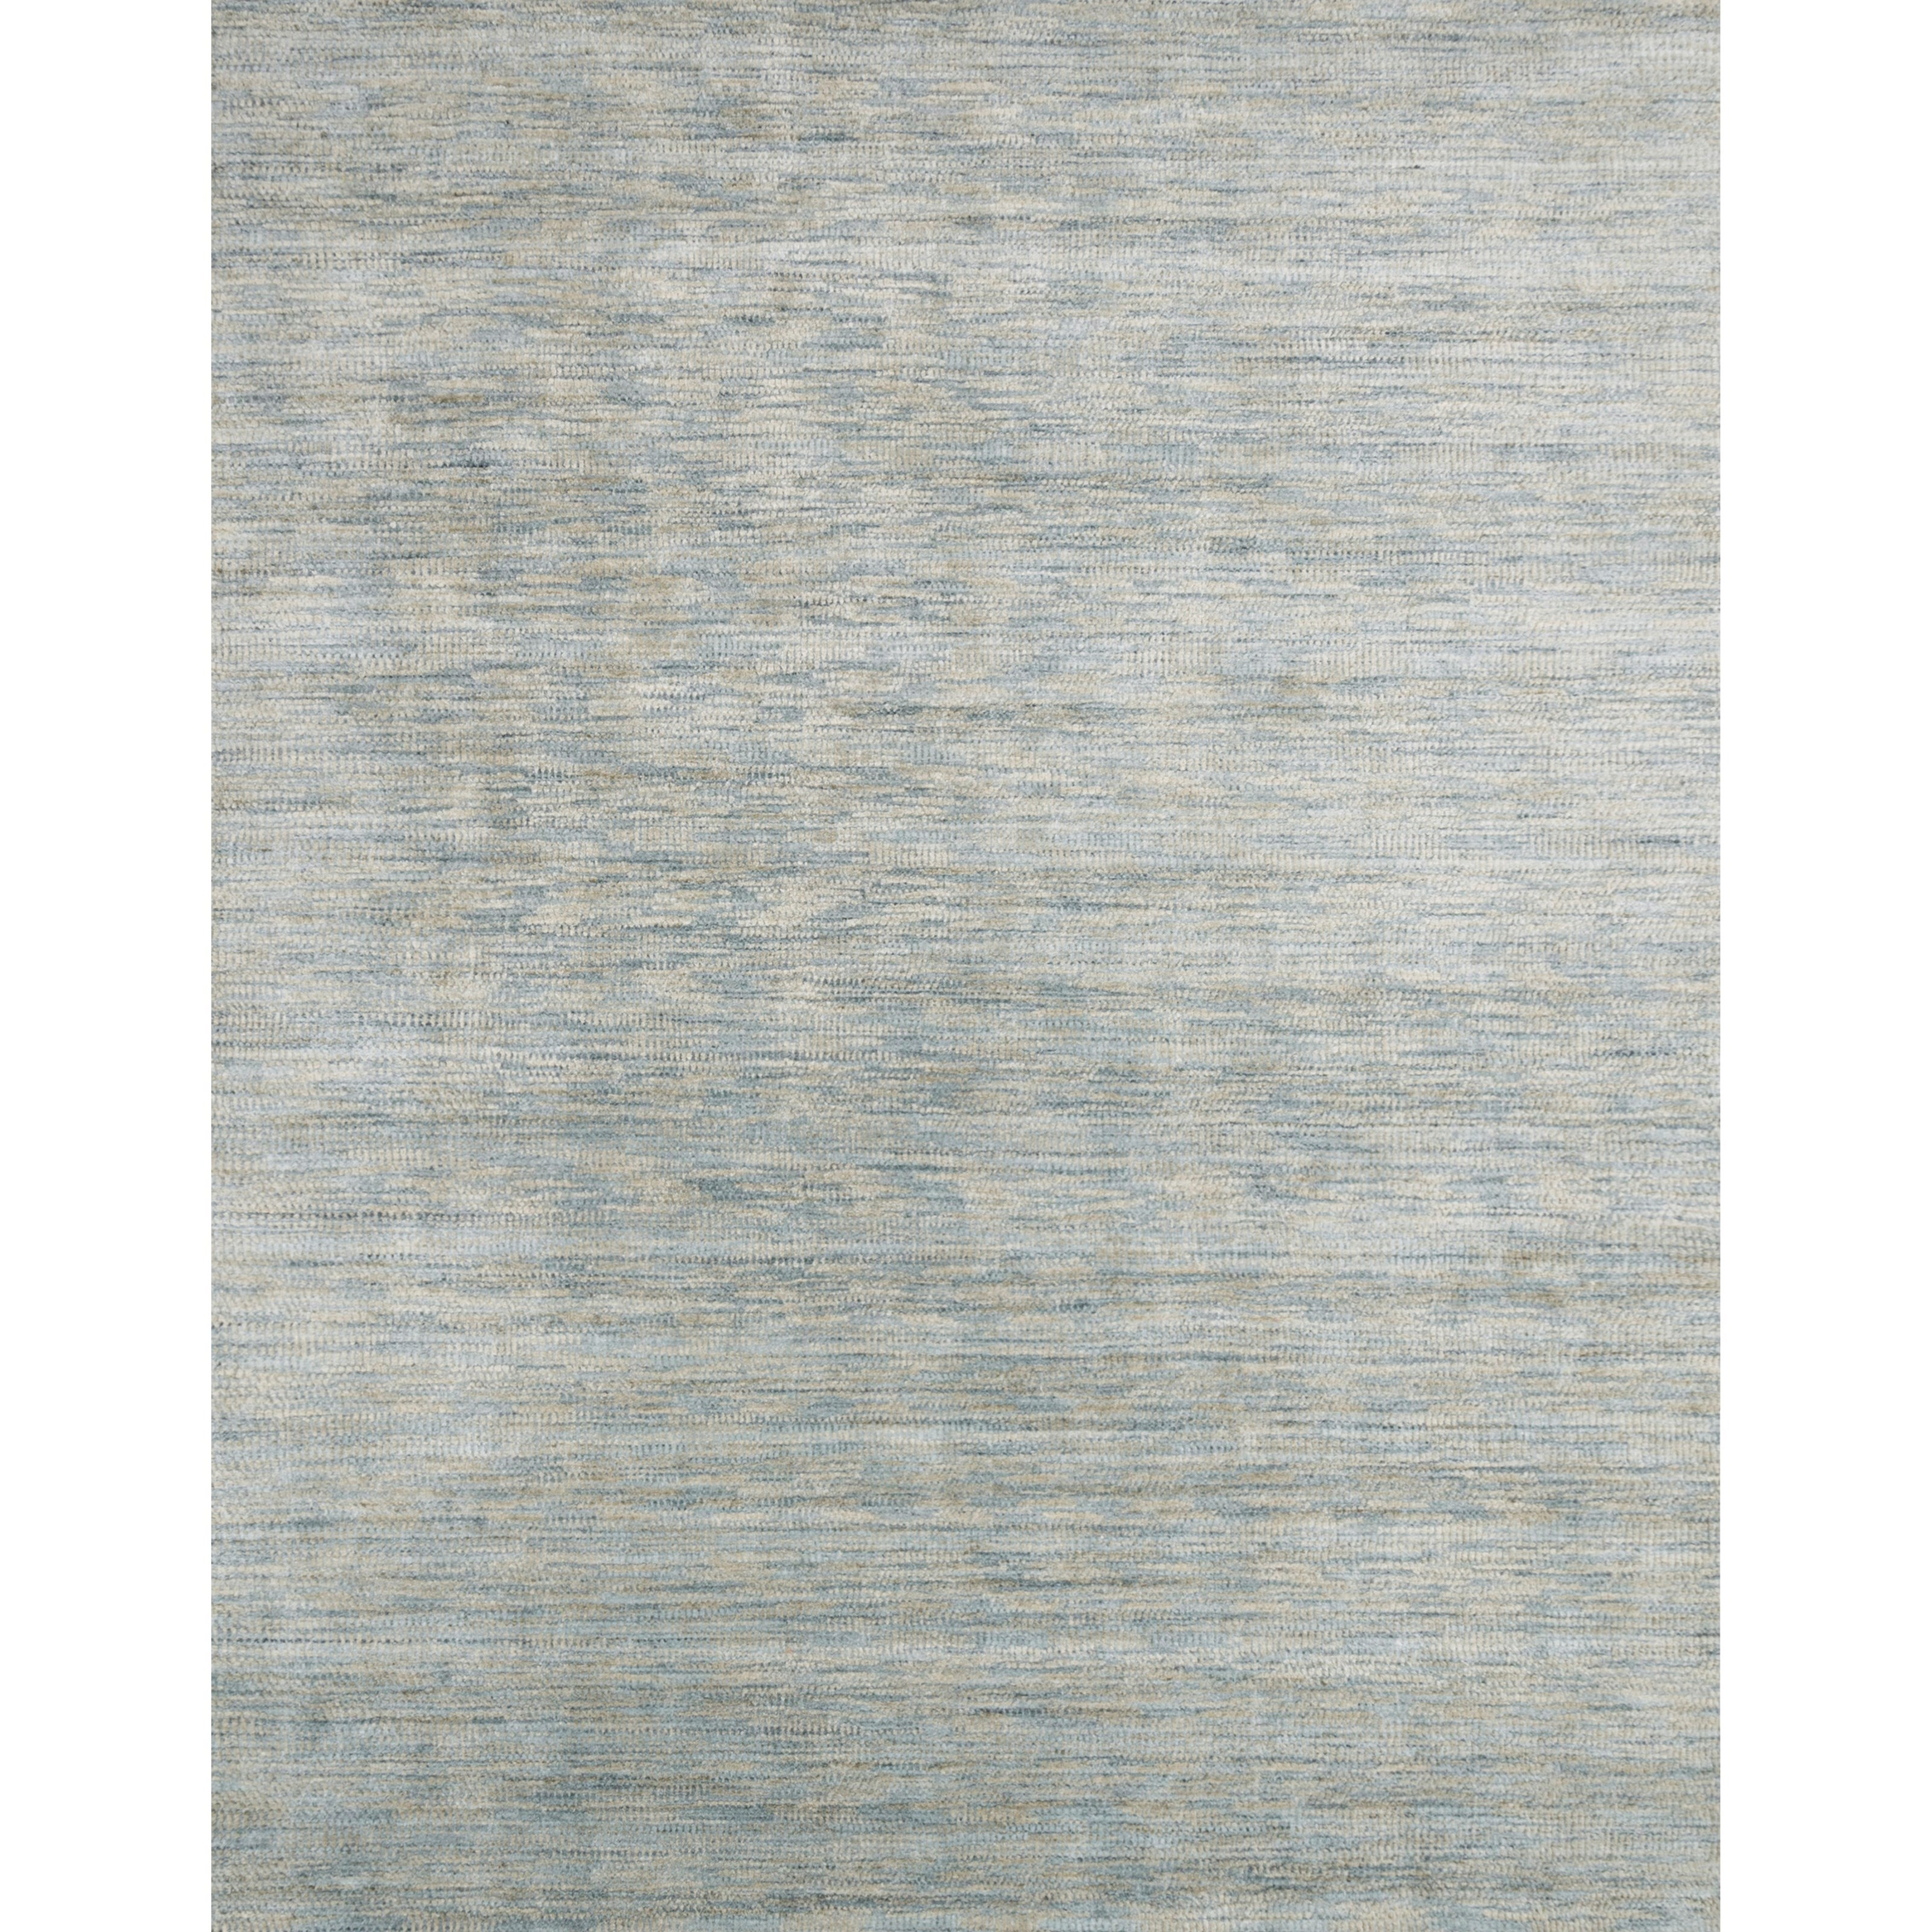 """Robin 8'6"""" x 11'6"""" Mist Rug by Loloi Rugs at Virginia Furniture Market"""